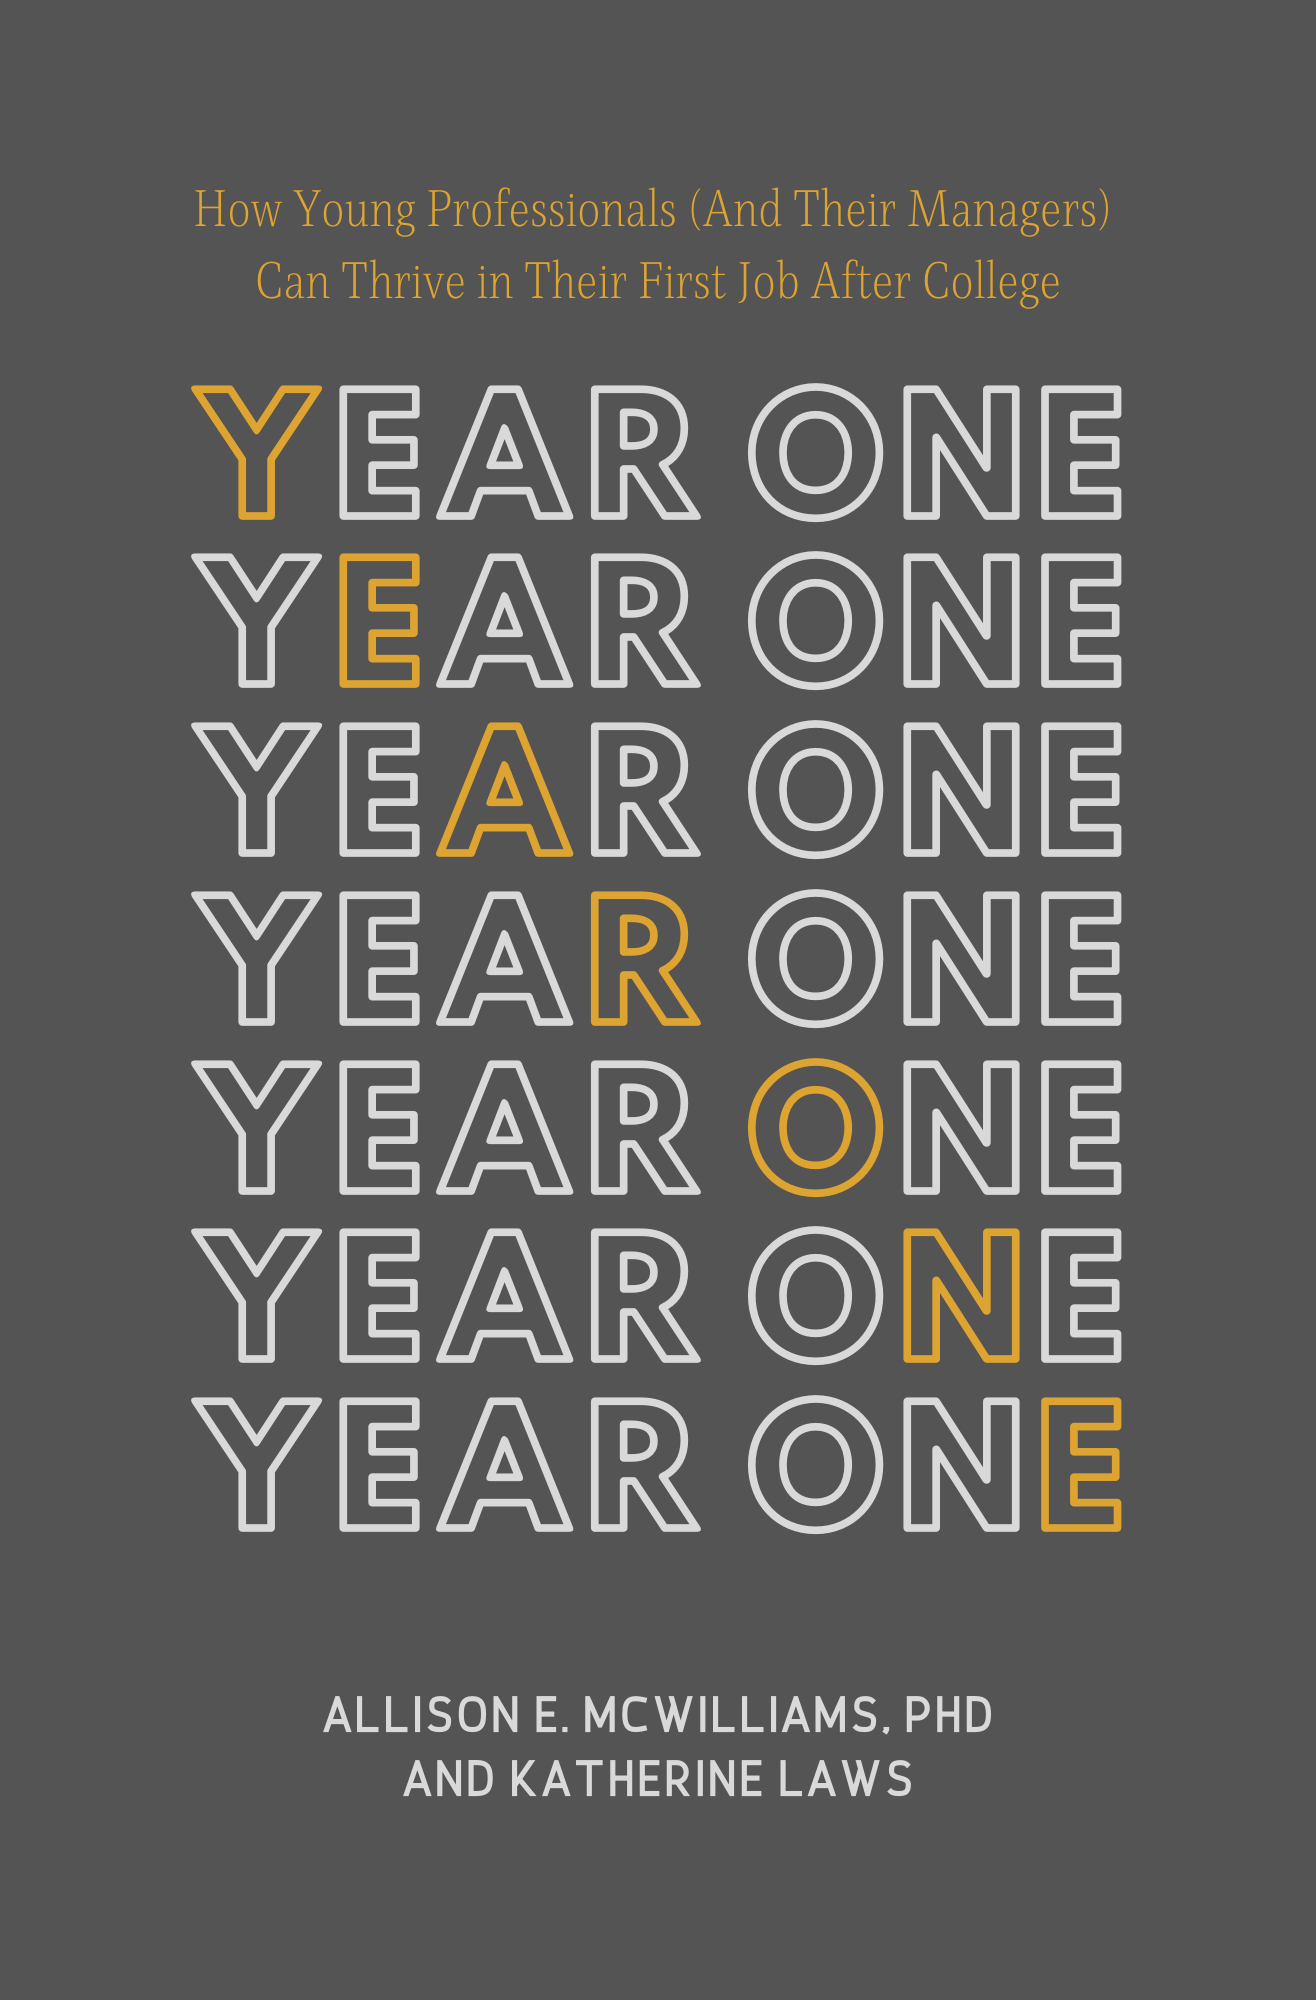 ear One Book Cover, gray background with Year One written in white and gold